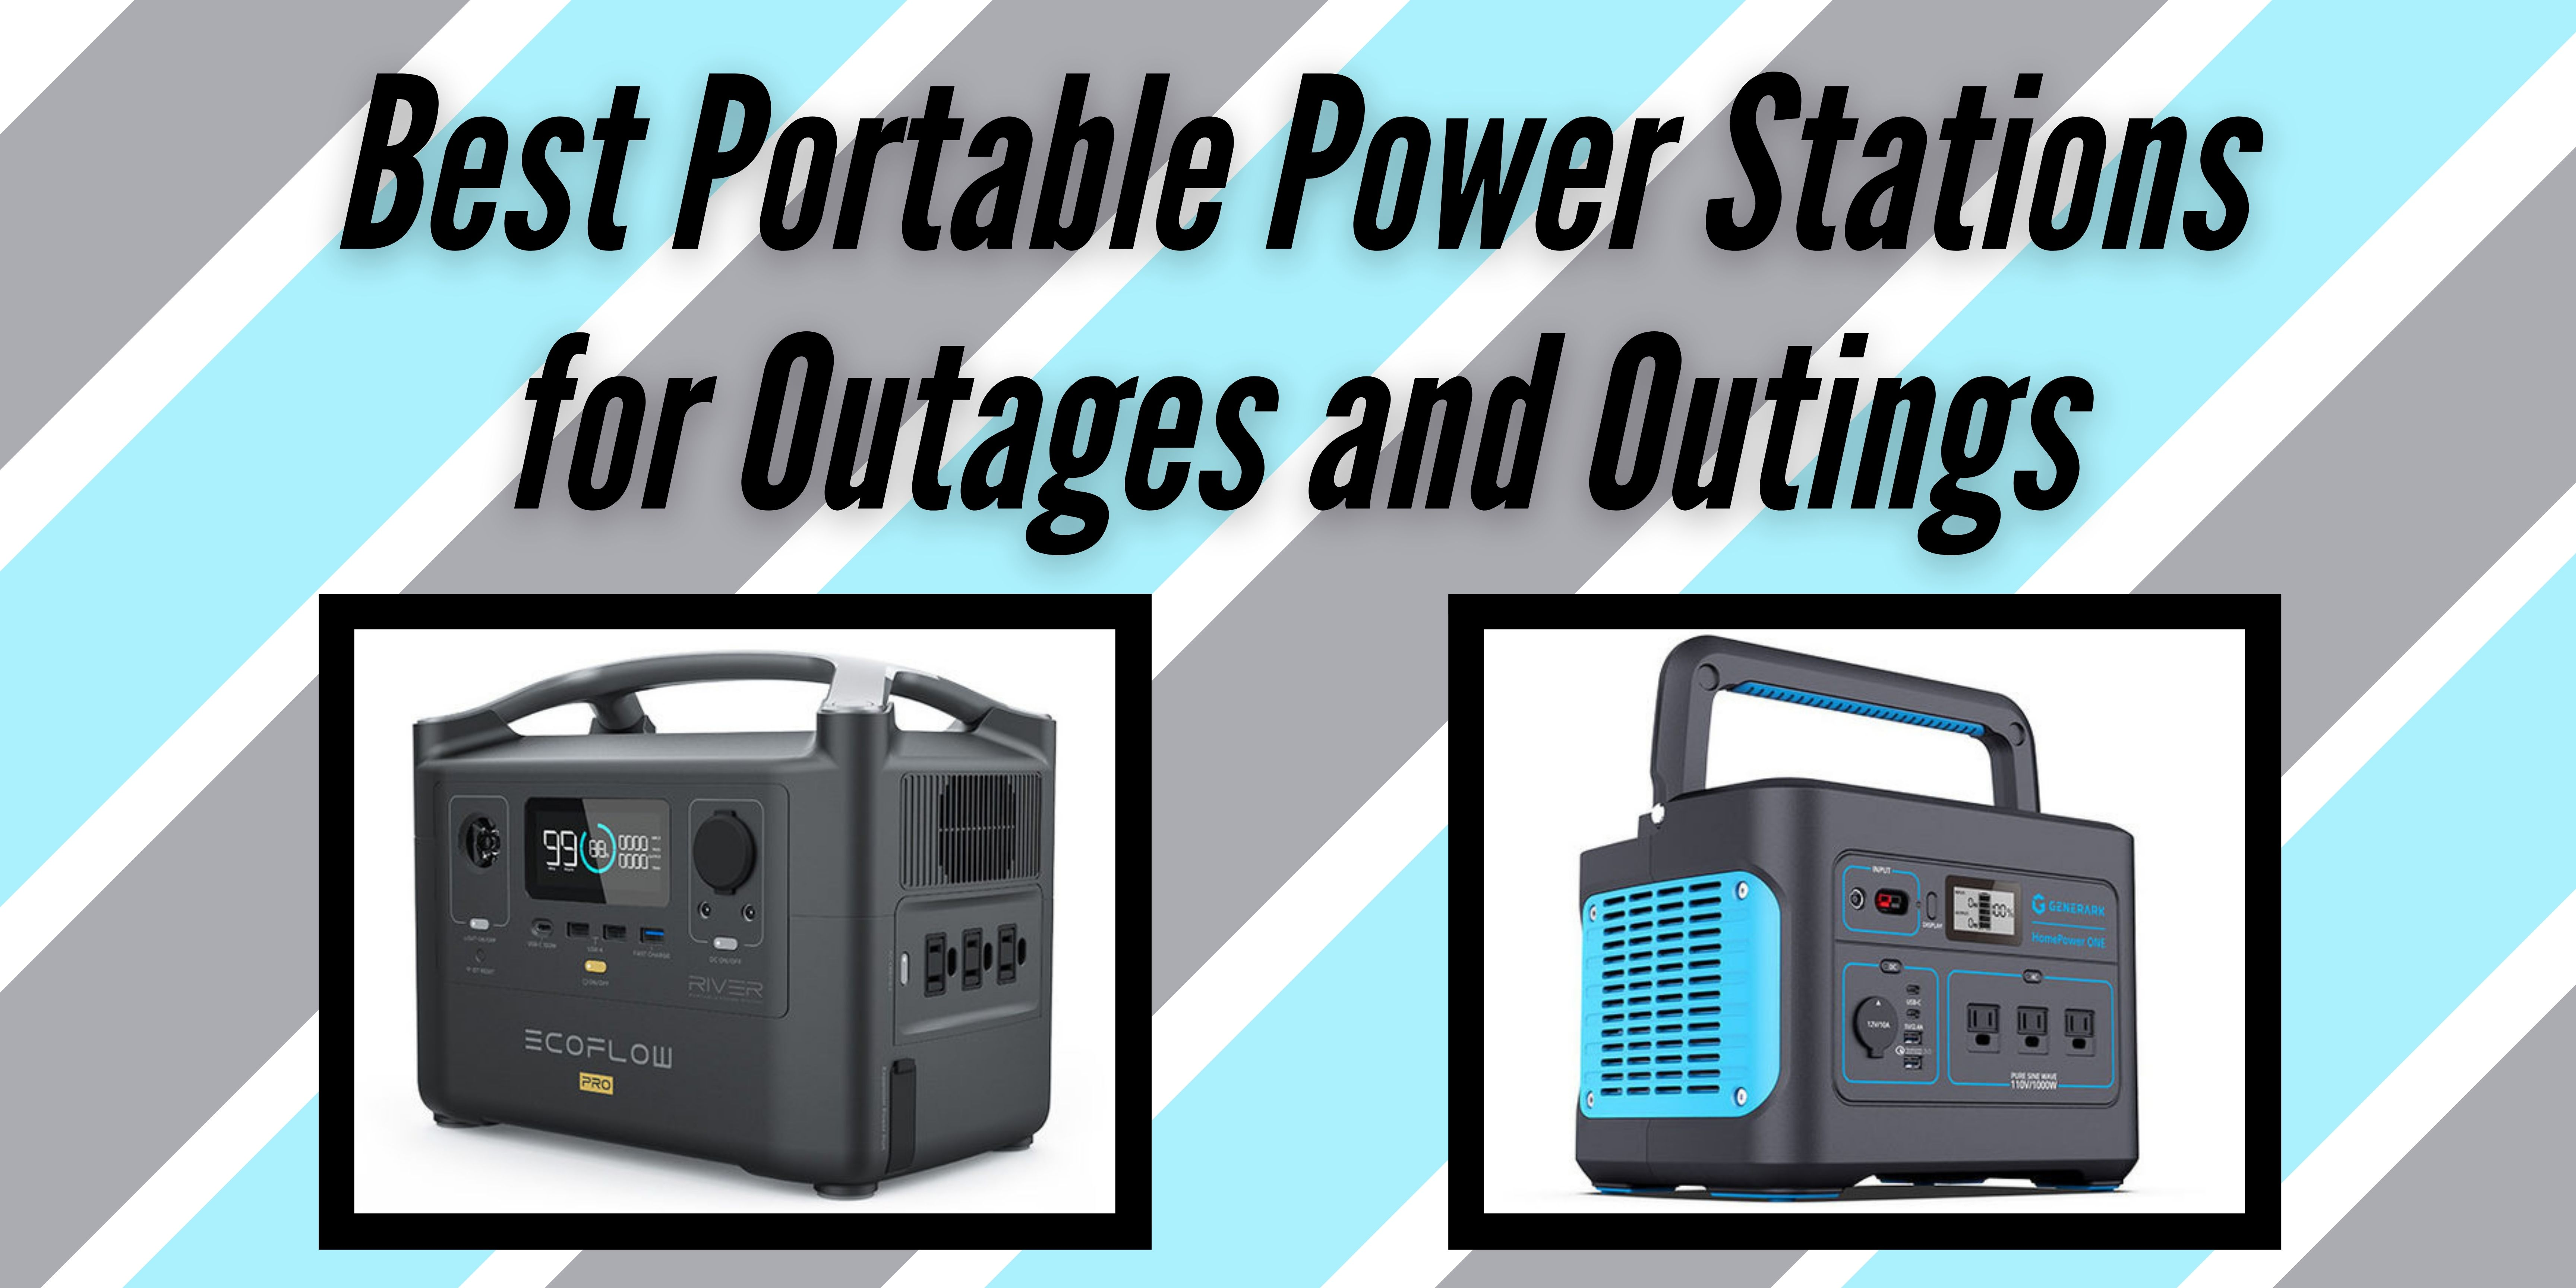 Best Portable Power Stations for Outages and Outings